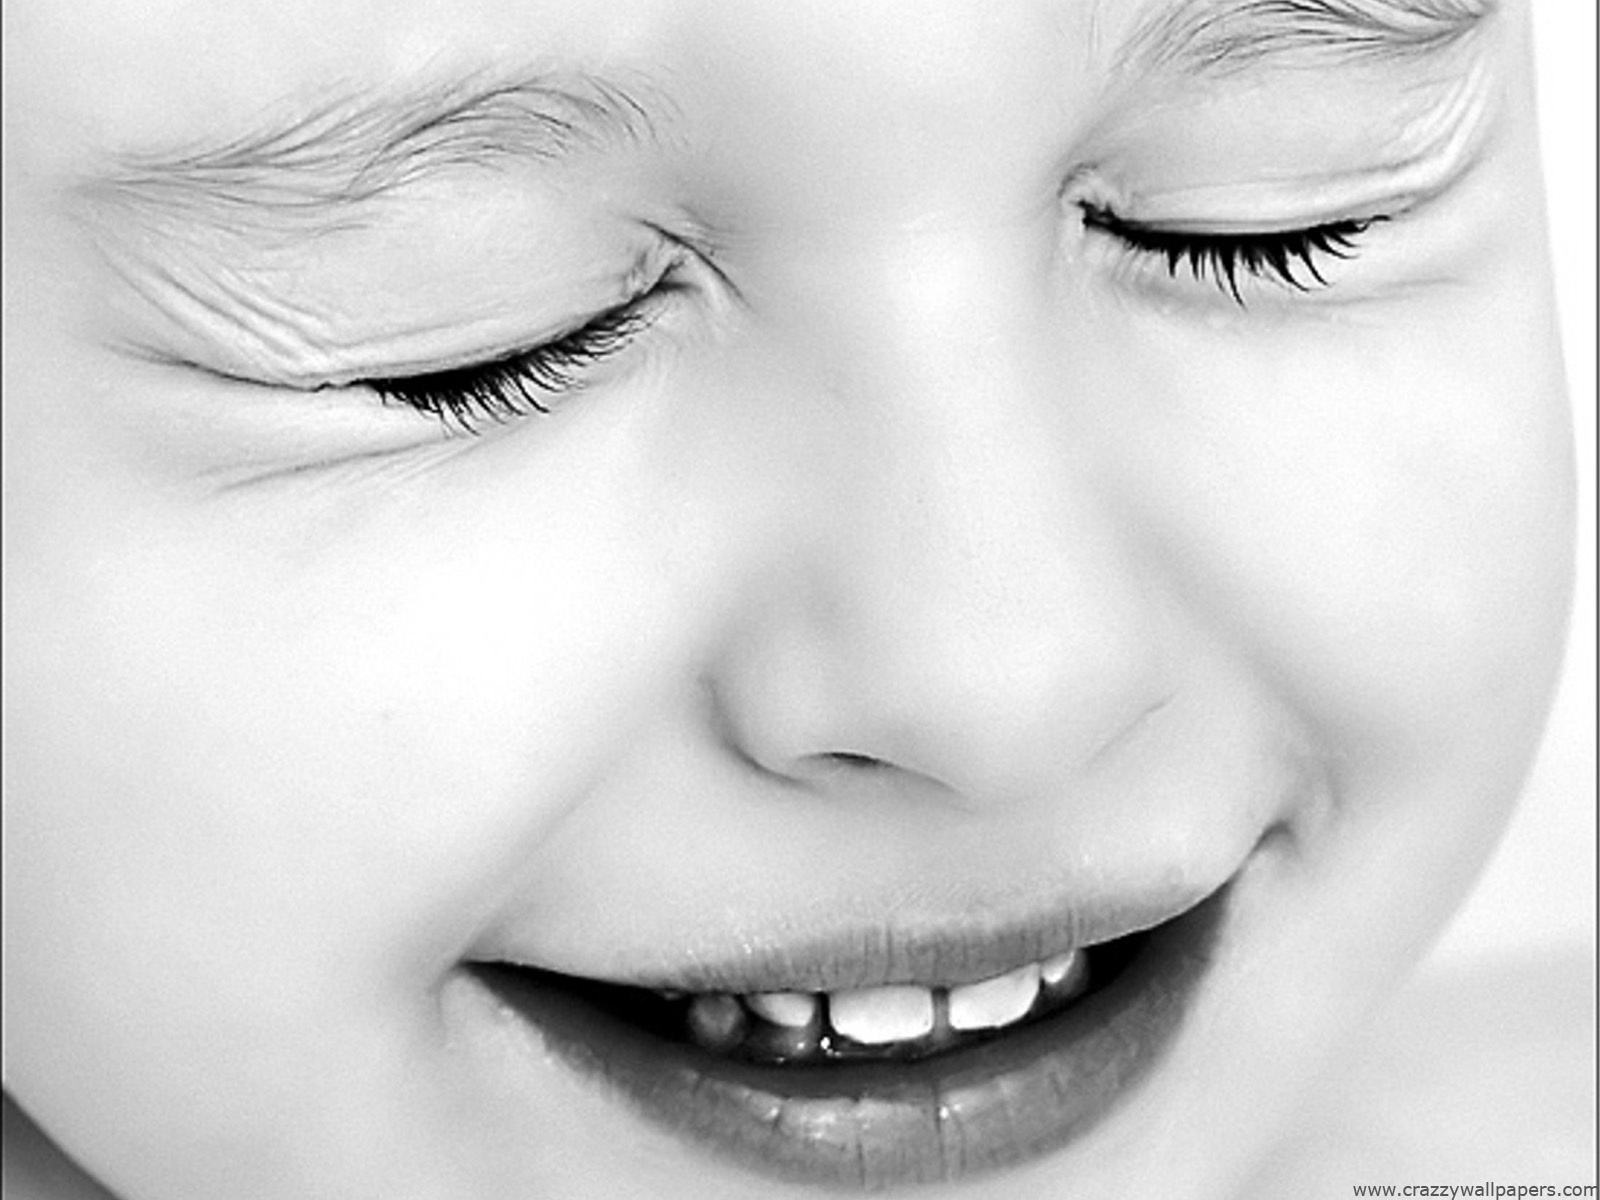 Cute Baby Black And White Black And White Wallpaper Baby 1600x1200 Download Hd Wallpaper Wallpapertip